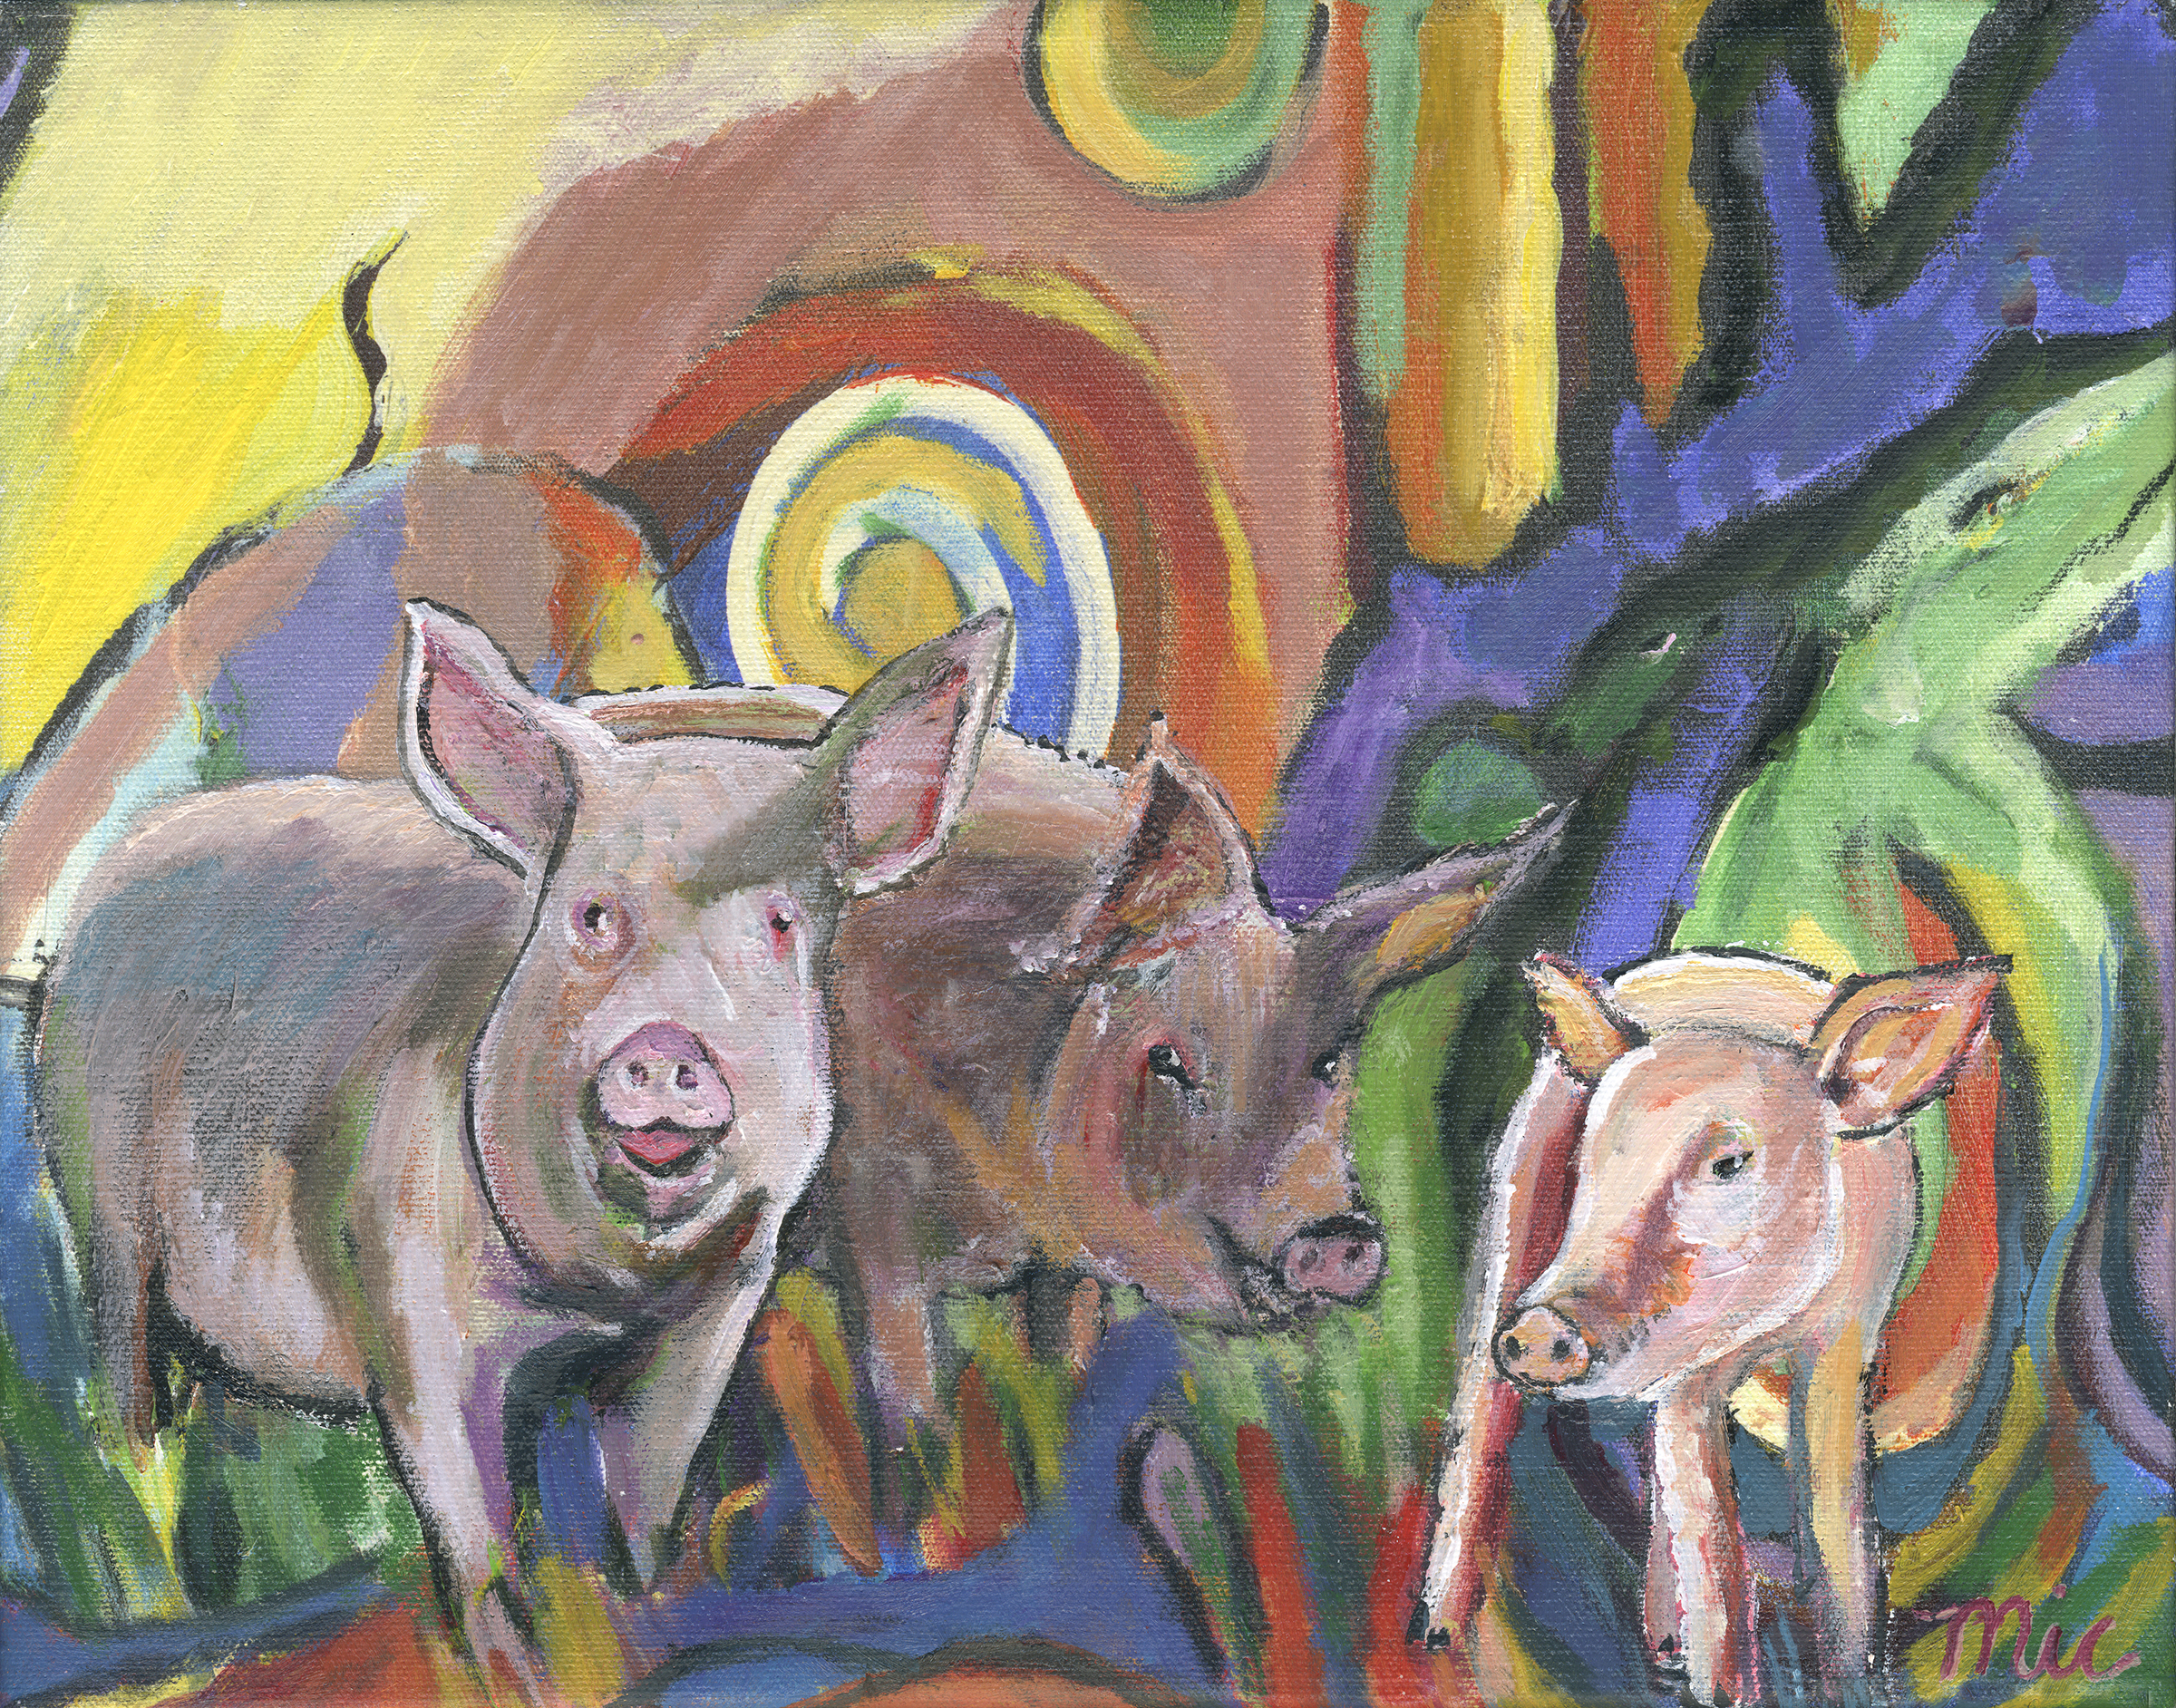 Pigs Porkers a Trois - Acrylic on Canvas Private collection Mark and Kat Schmiedicke and Tiffany Barton.Giclee Limited Edition and canvas prints are available. Please visit the prints gallery.